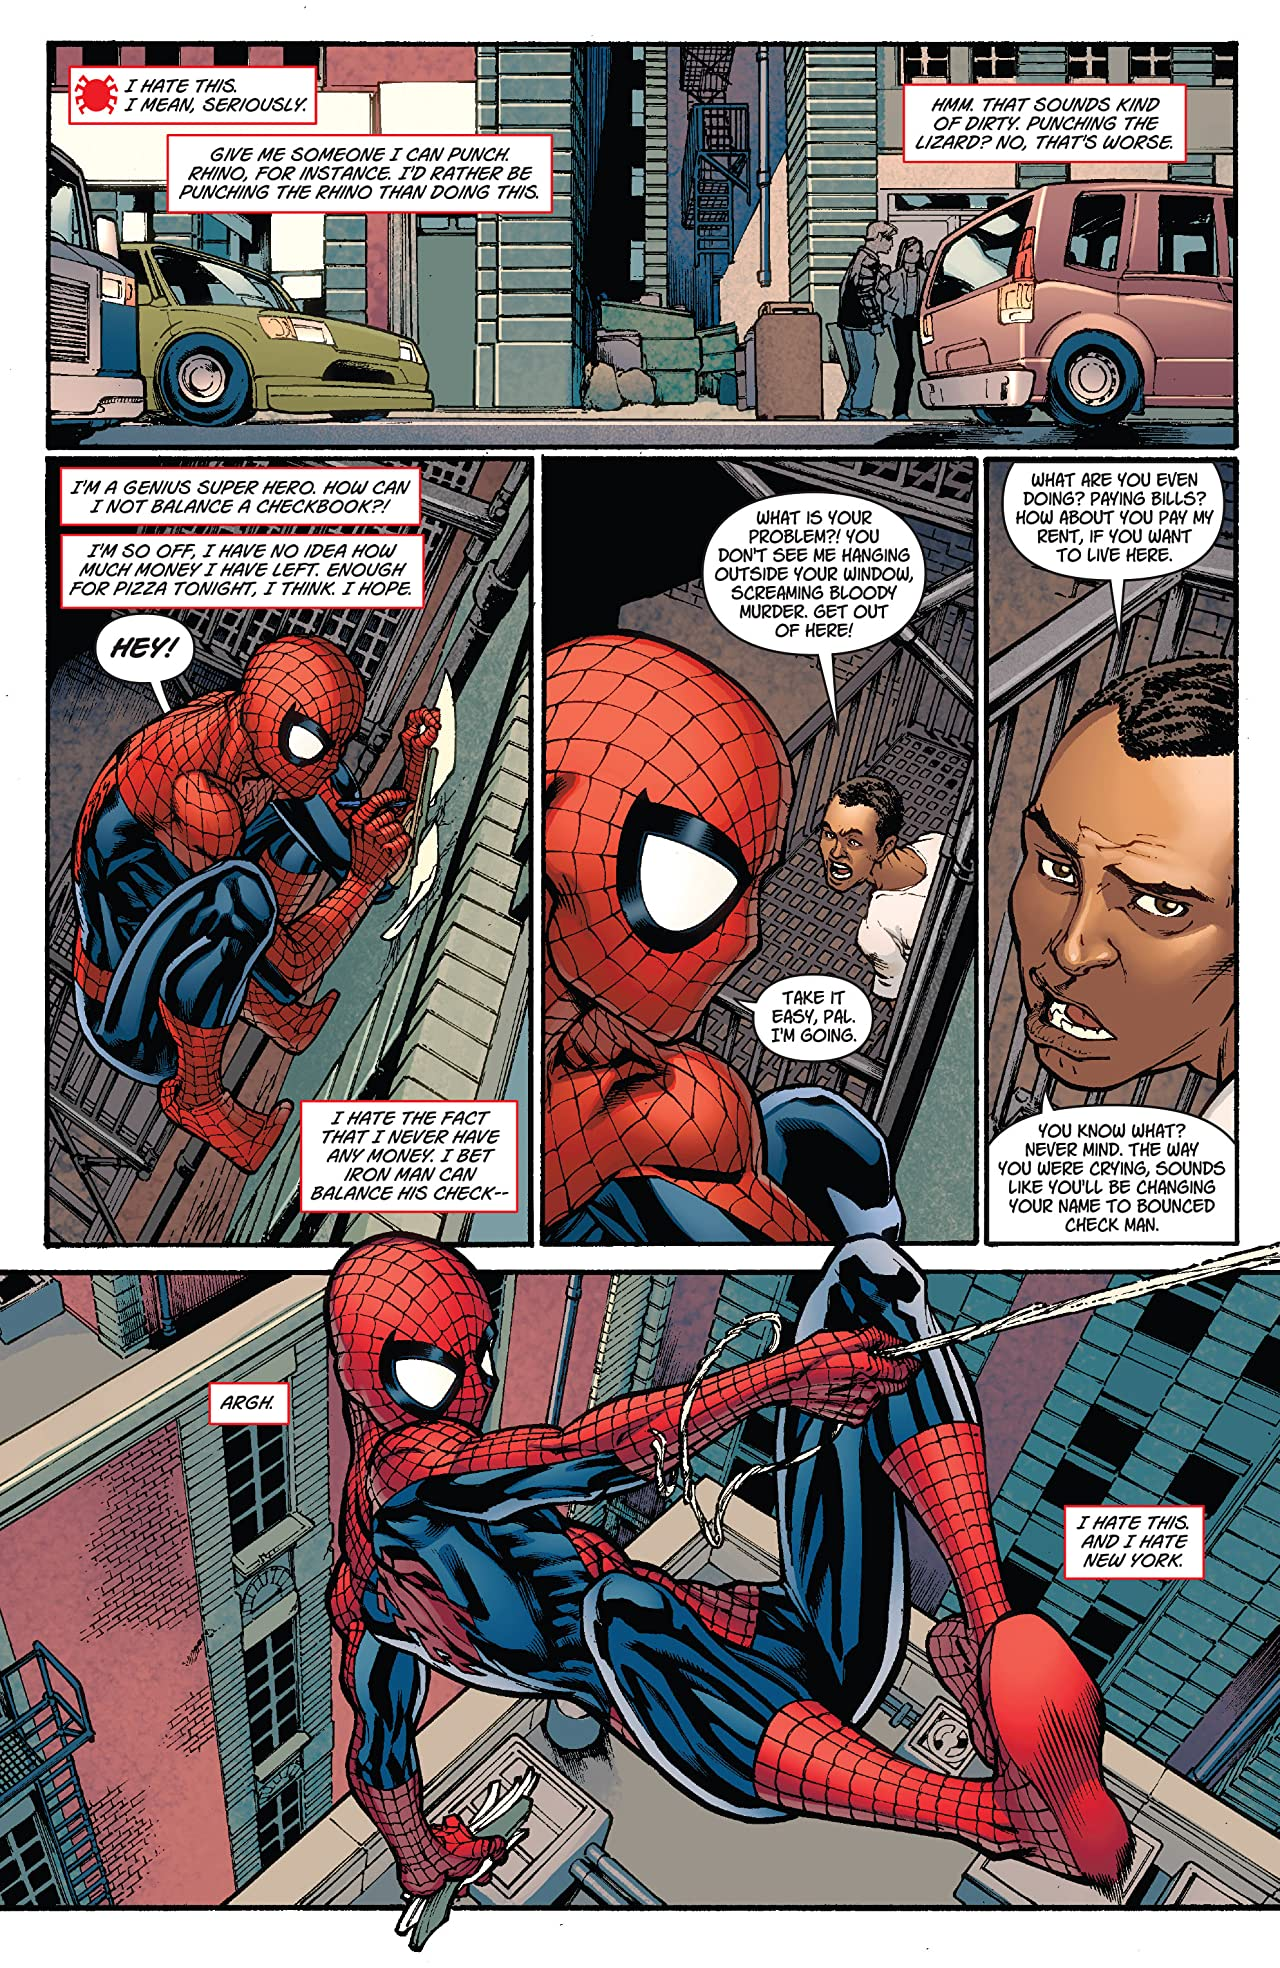 The Many Loves of The Amazing Spider-Man (2010) #1